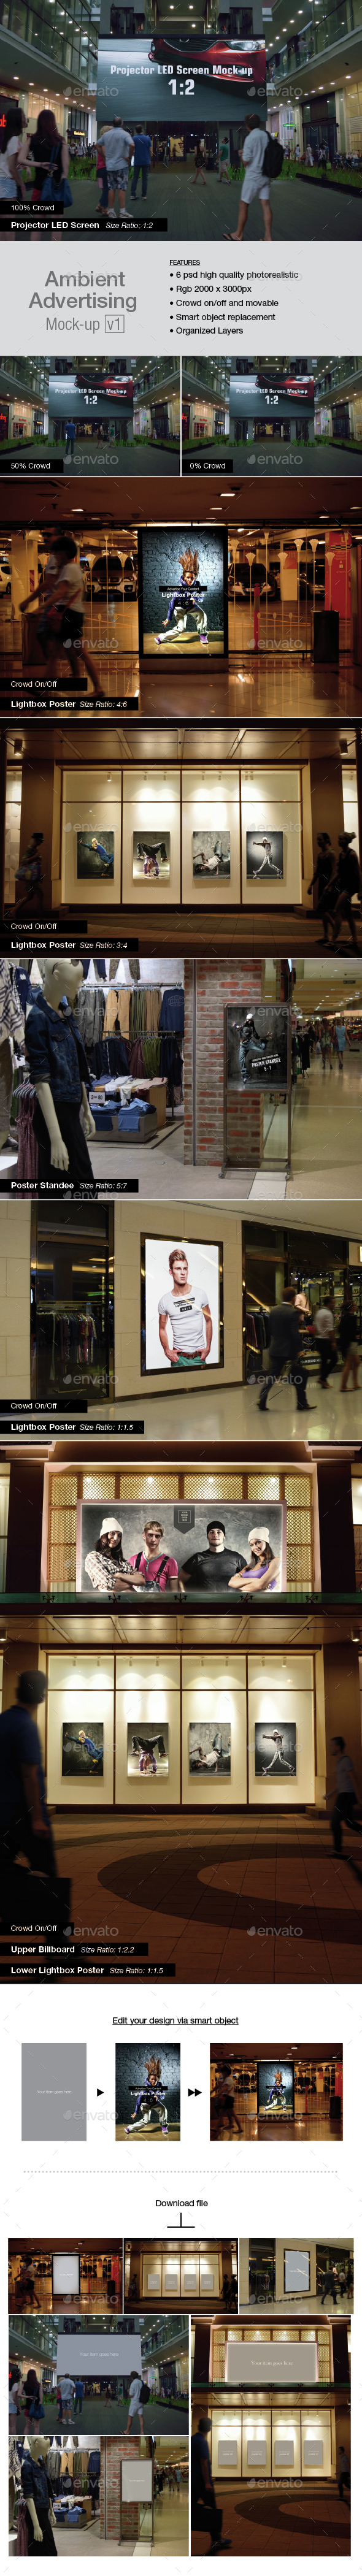 Ambient Advertising Mock-up v1 - Product Mock-Ups Graphics